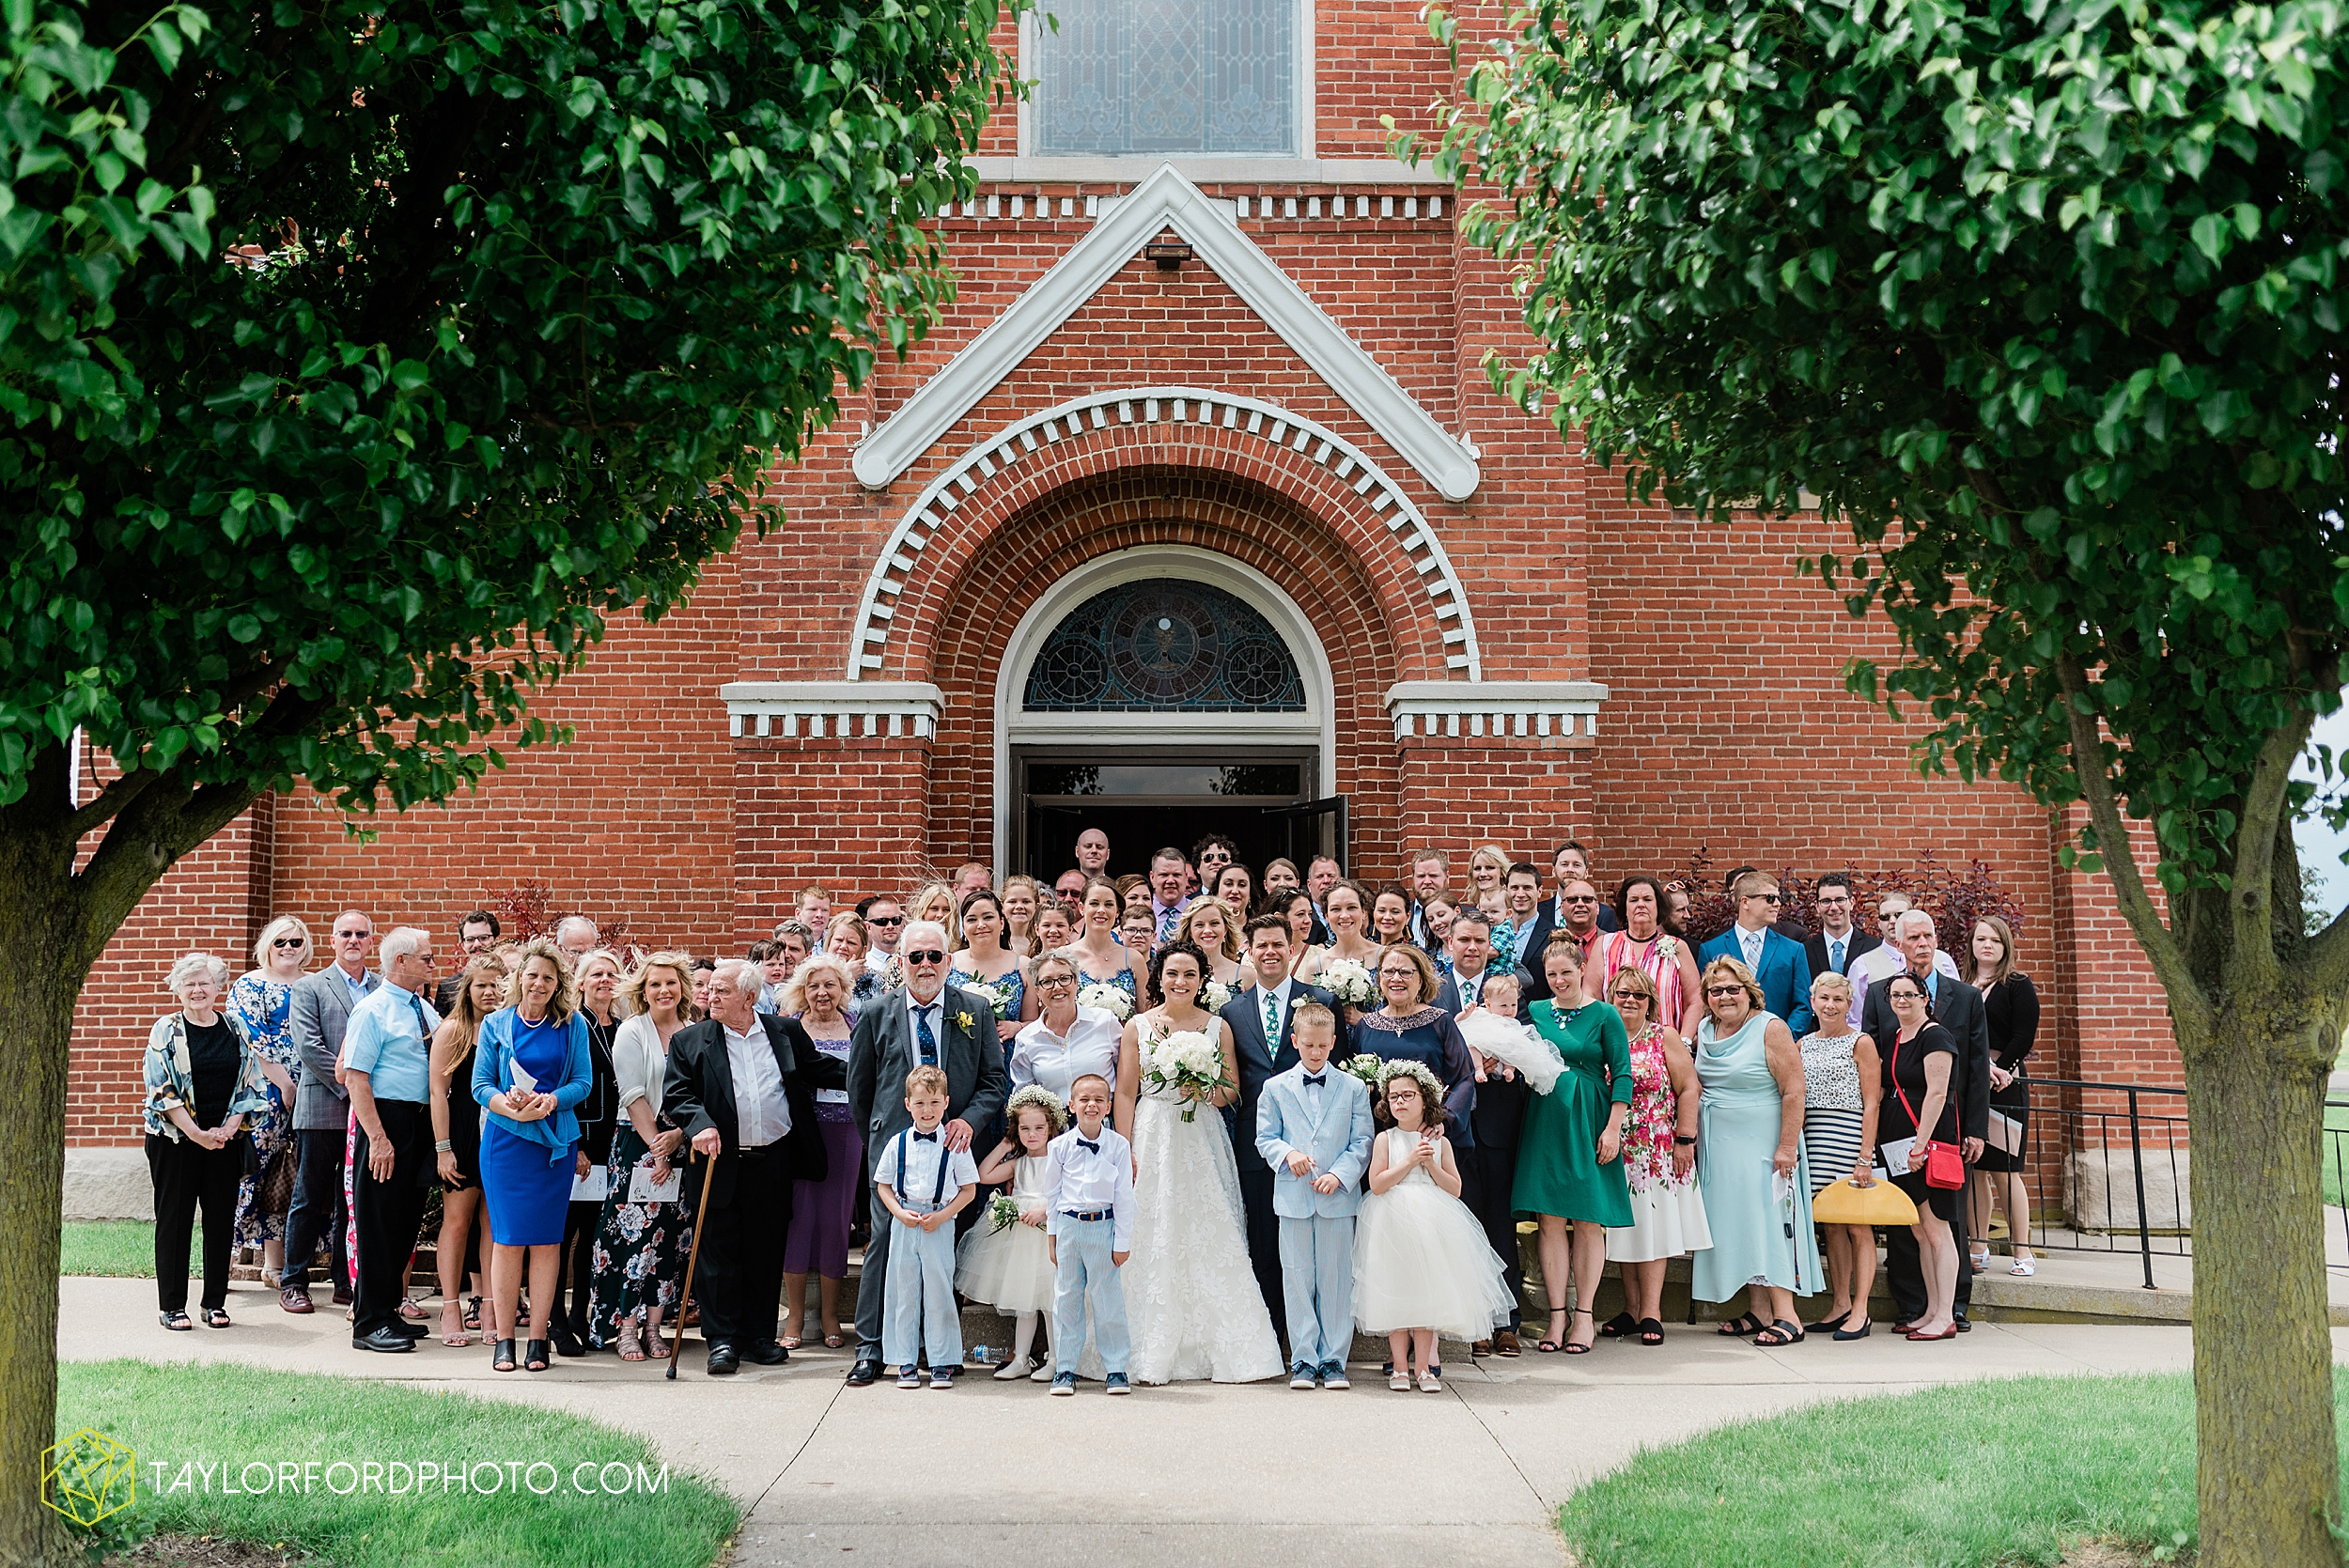 fort-recovery-ohio-saint-anthony-church-columbia-city-joseph-decuis-farmstead-tri-lakes-shriner-lake-wawasee-wedding-photographer-photography-taylor-ford-hirschy-photographer_2882.jpg